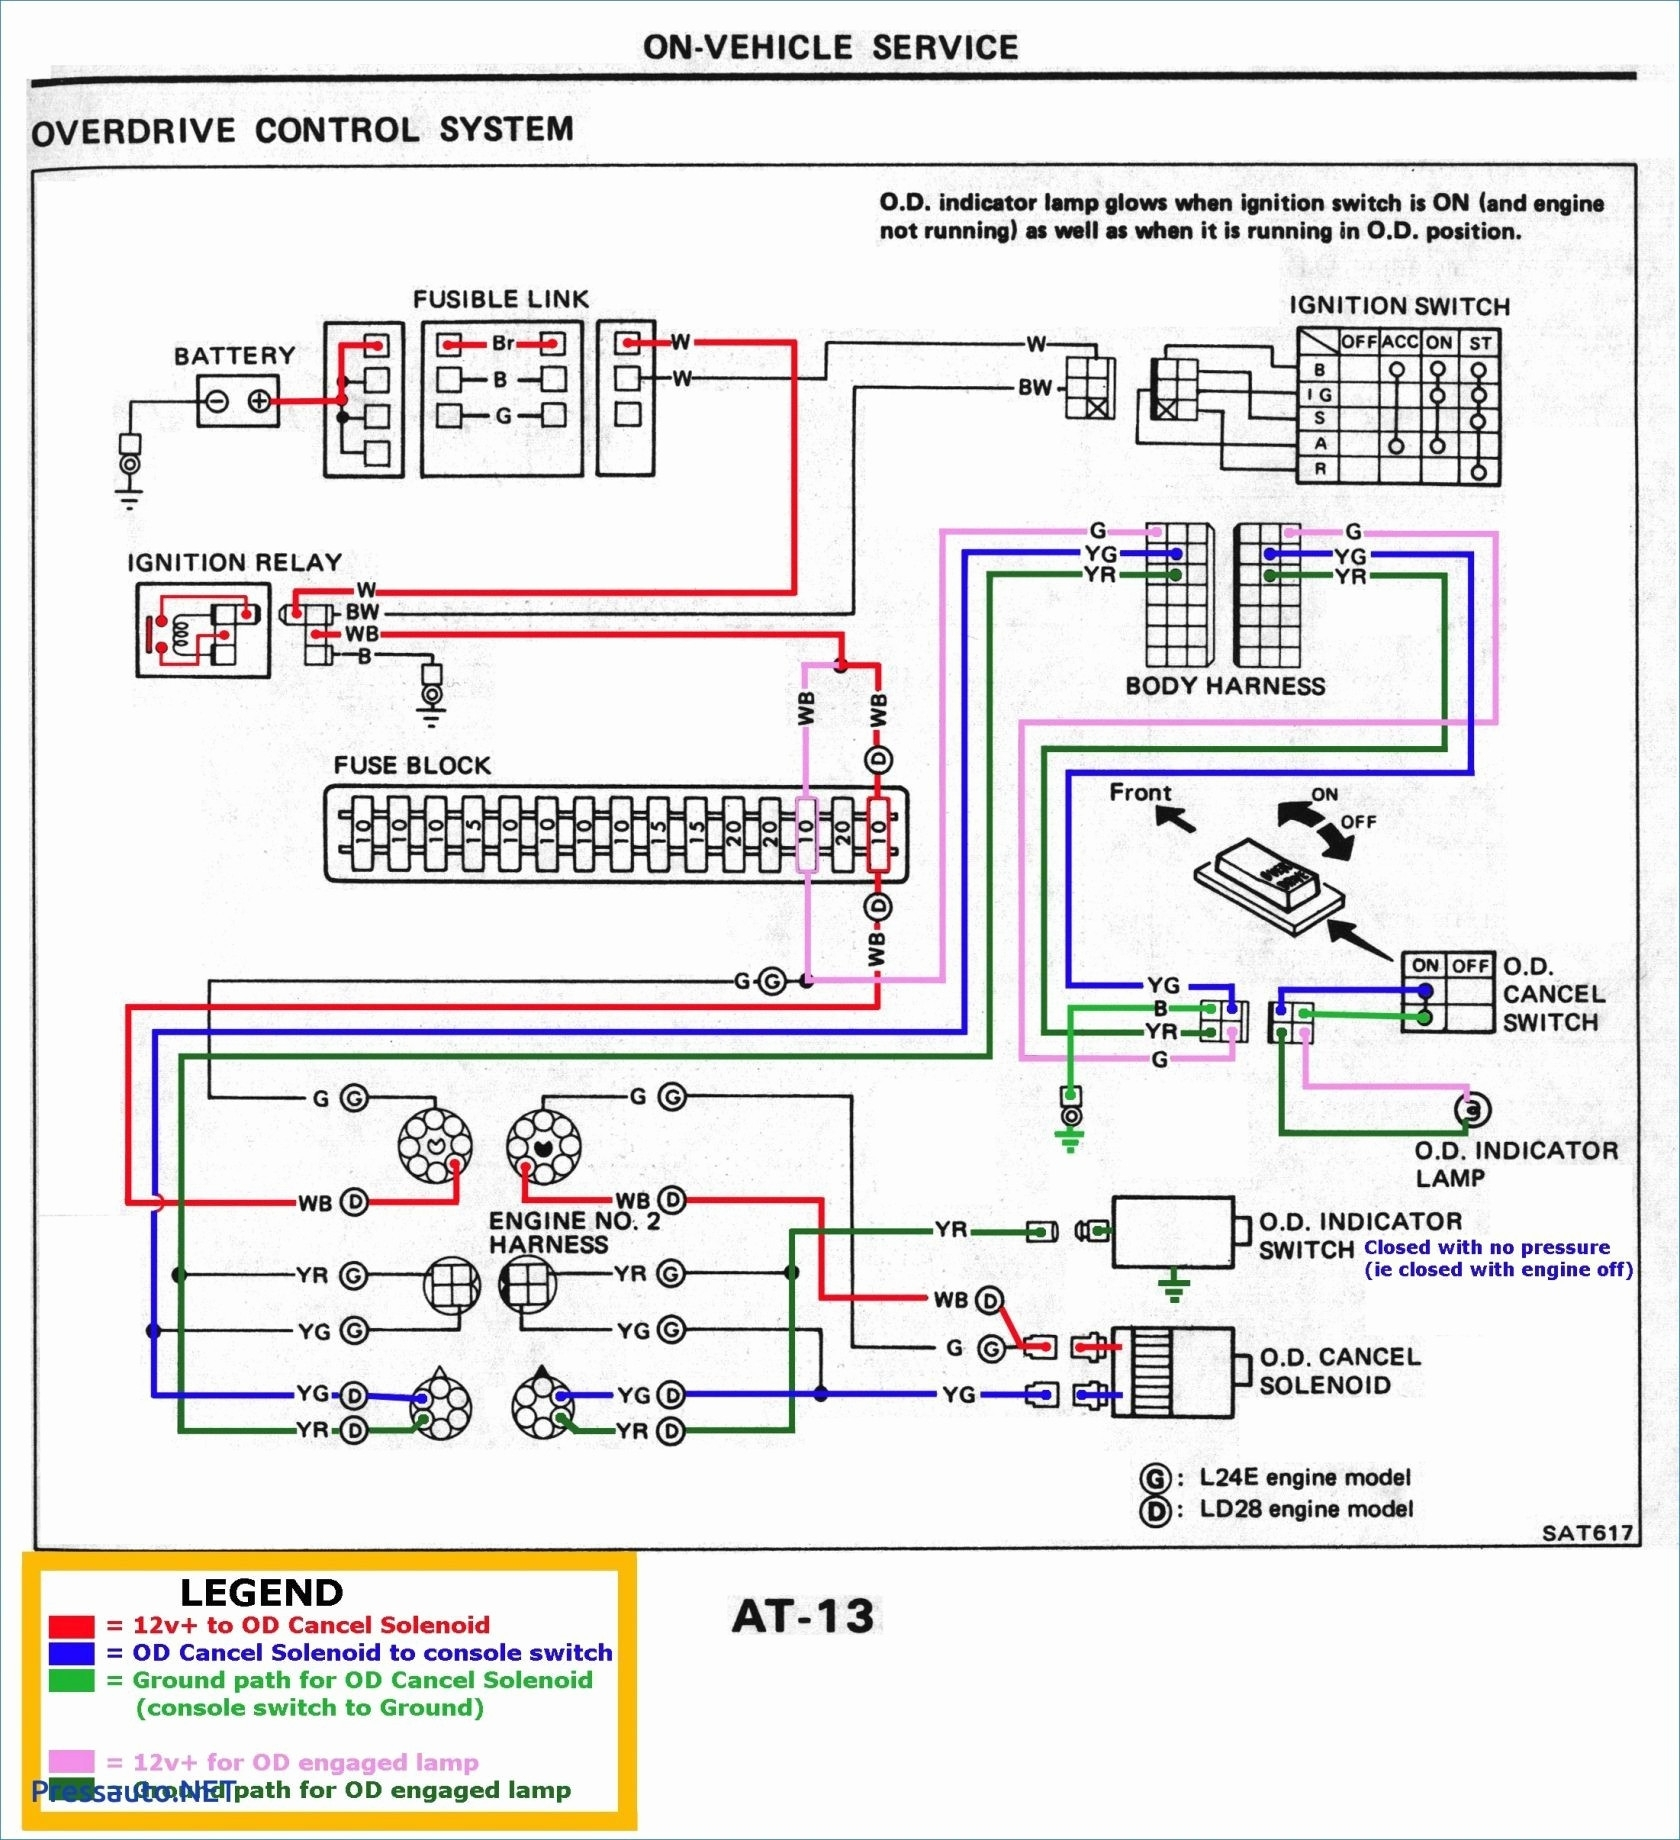 warn winch wiring diagram Download-Wiring Diagram for Warn Winch Fresh Wiring Diagram Warn A2000 Wiring 15-o